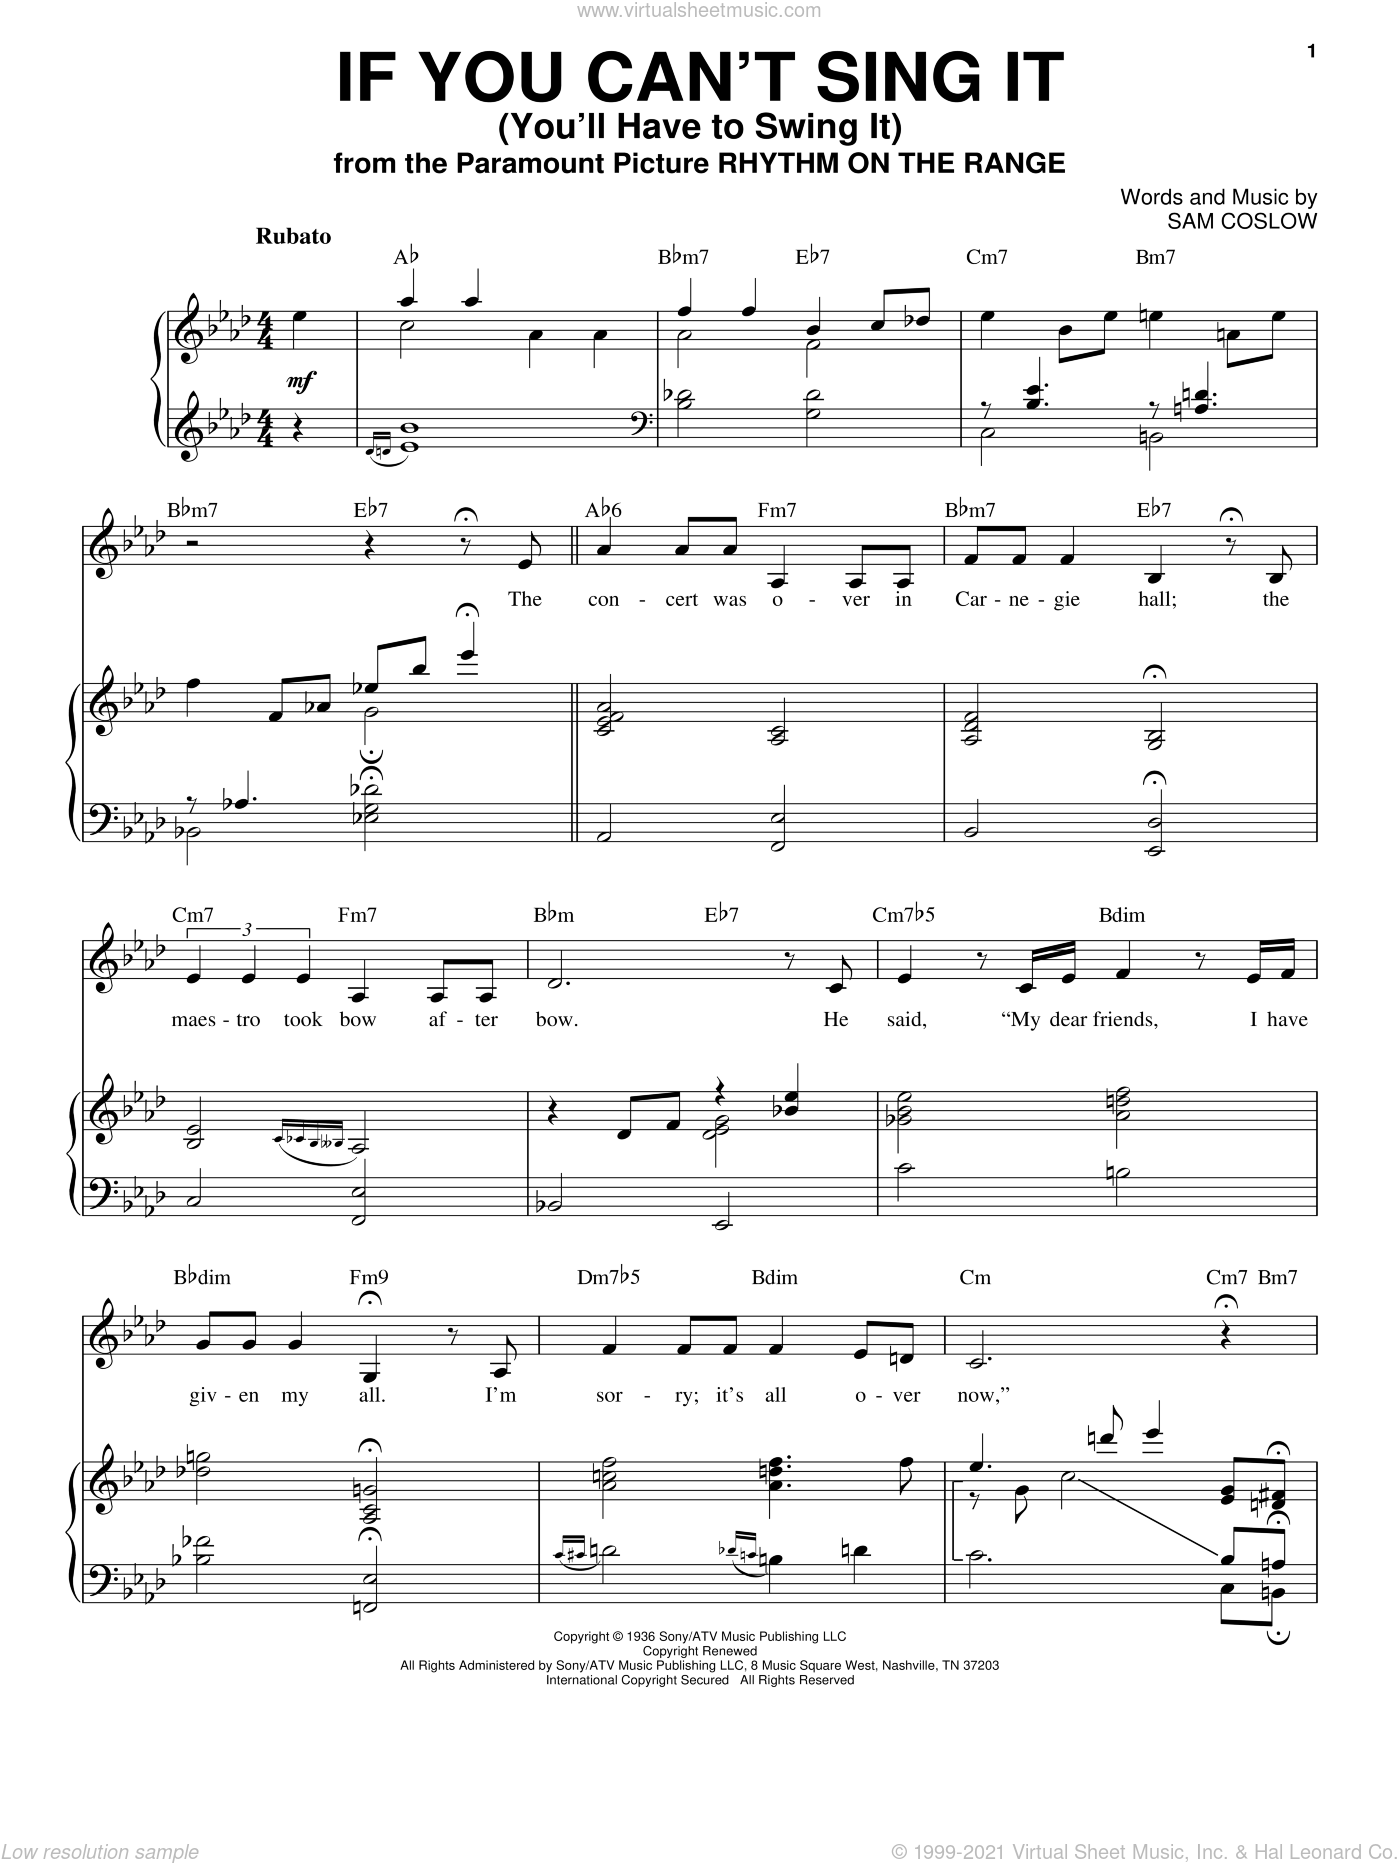 If You Can't Sing It (You'll Have To Swing It) sheet music for voice and piano by Nikki Yanofsky, Ella Fitzgerald and Sam Coslow, intermediate skill level